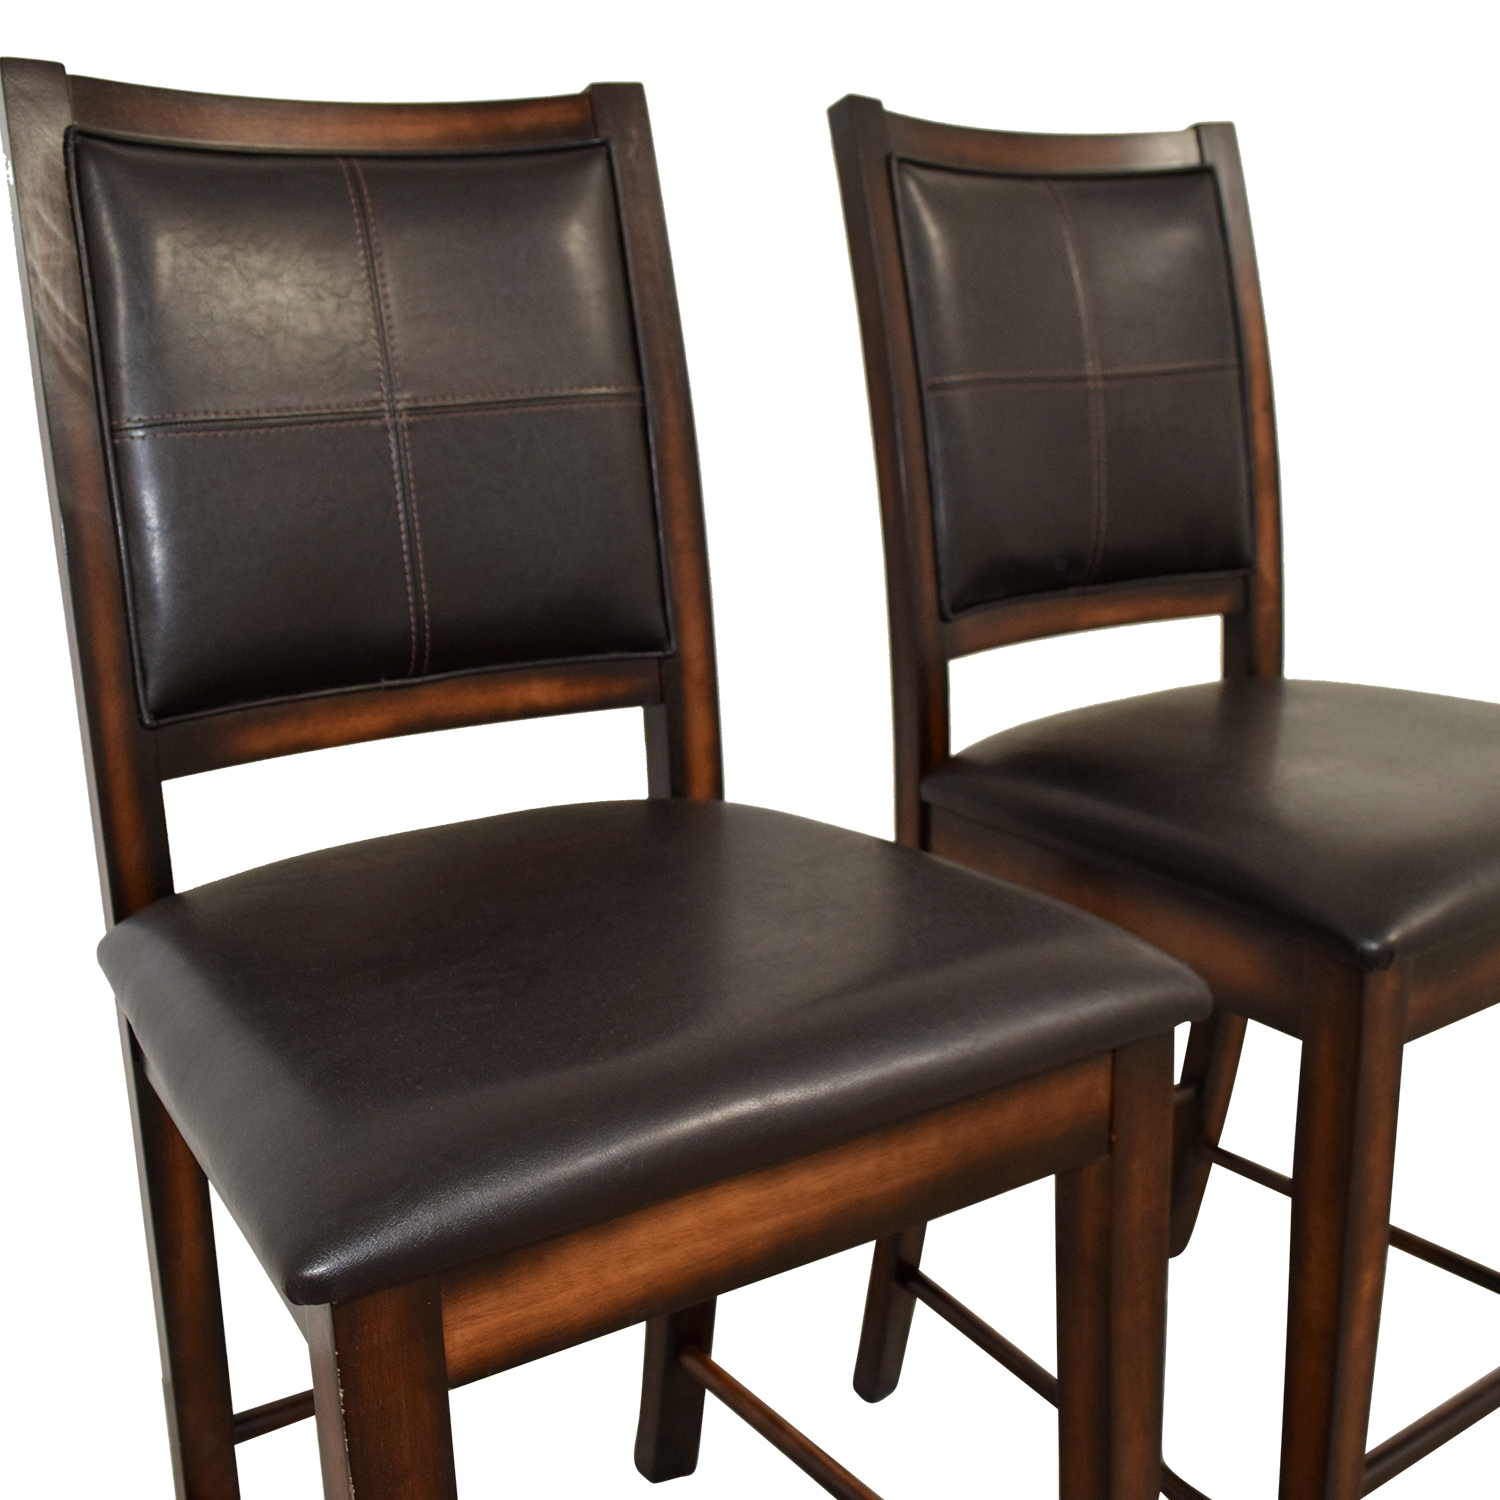 90 Off Brown Leather Counter Stools Chairs